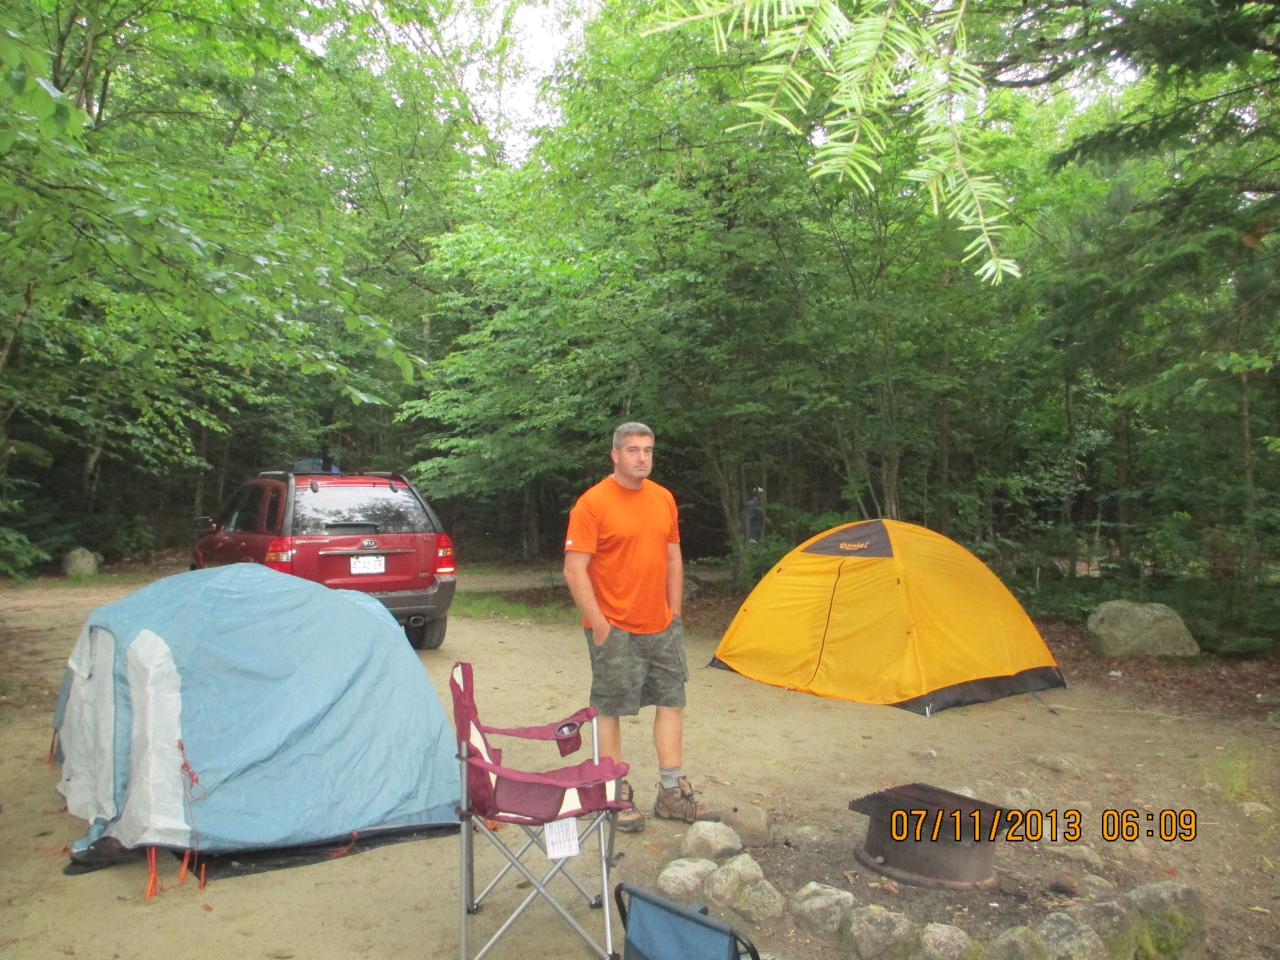 hike new england trail report katahdin. Black Bedroom Furniture Sets. Home Design Ideas